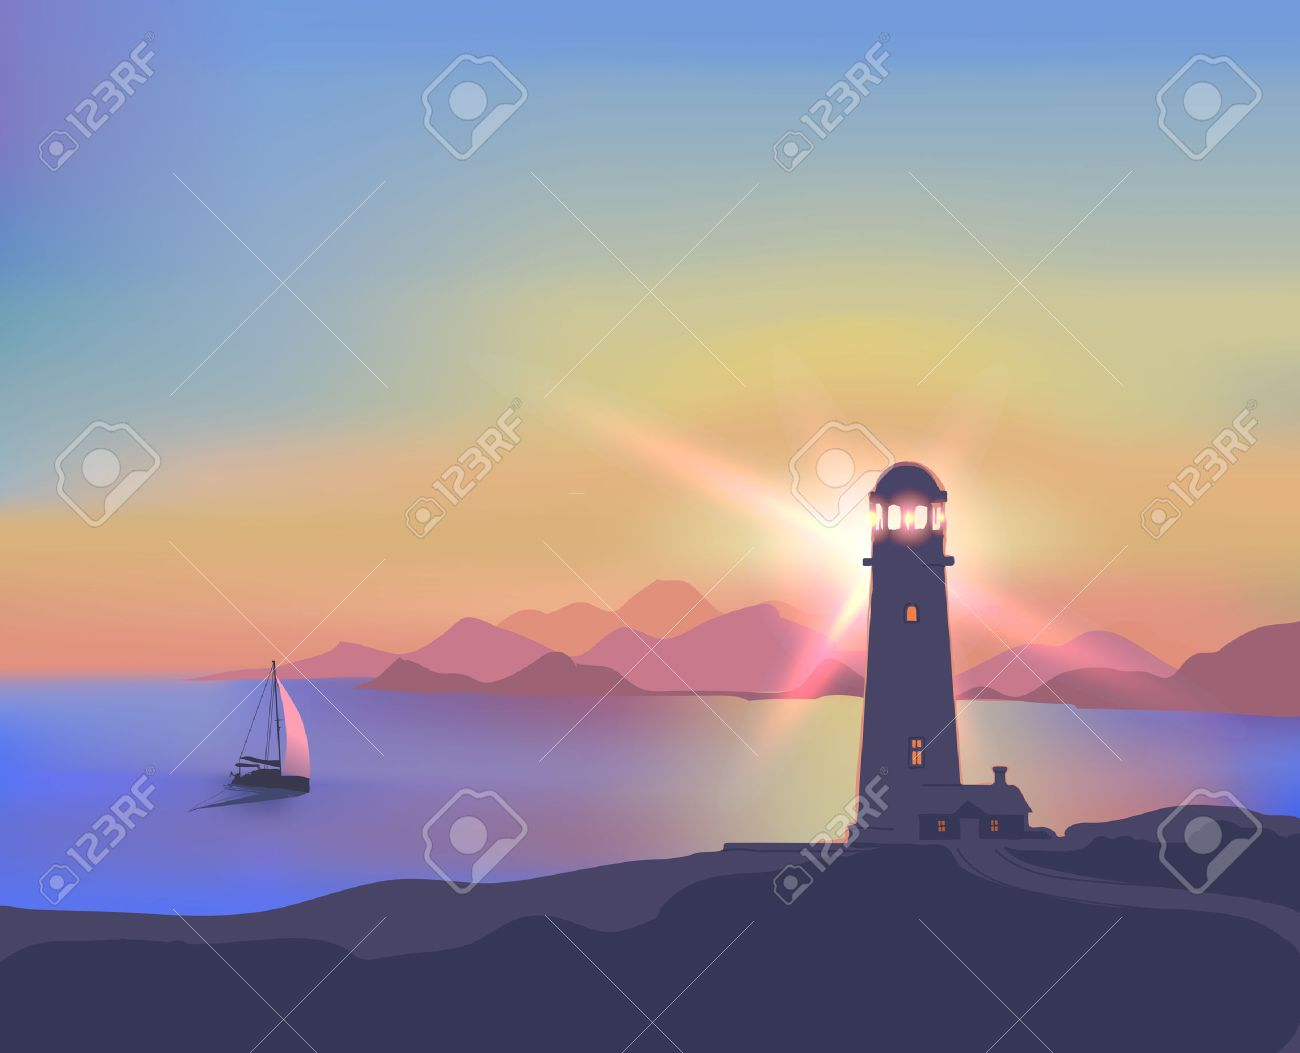 Card with a beautiful sunset, sea, lighthouse, ship, mountains - 29688078